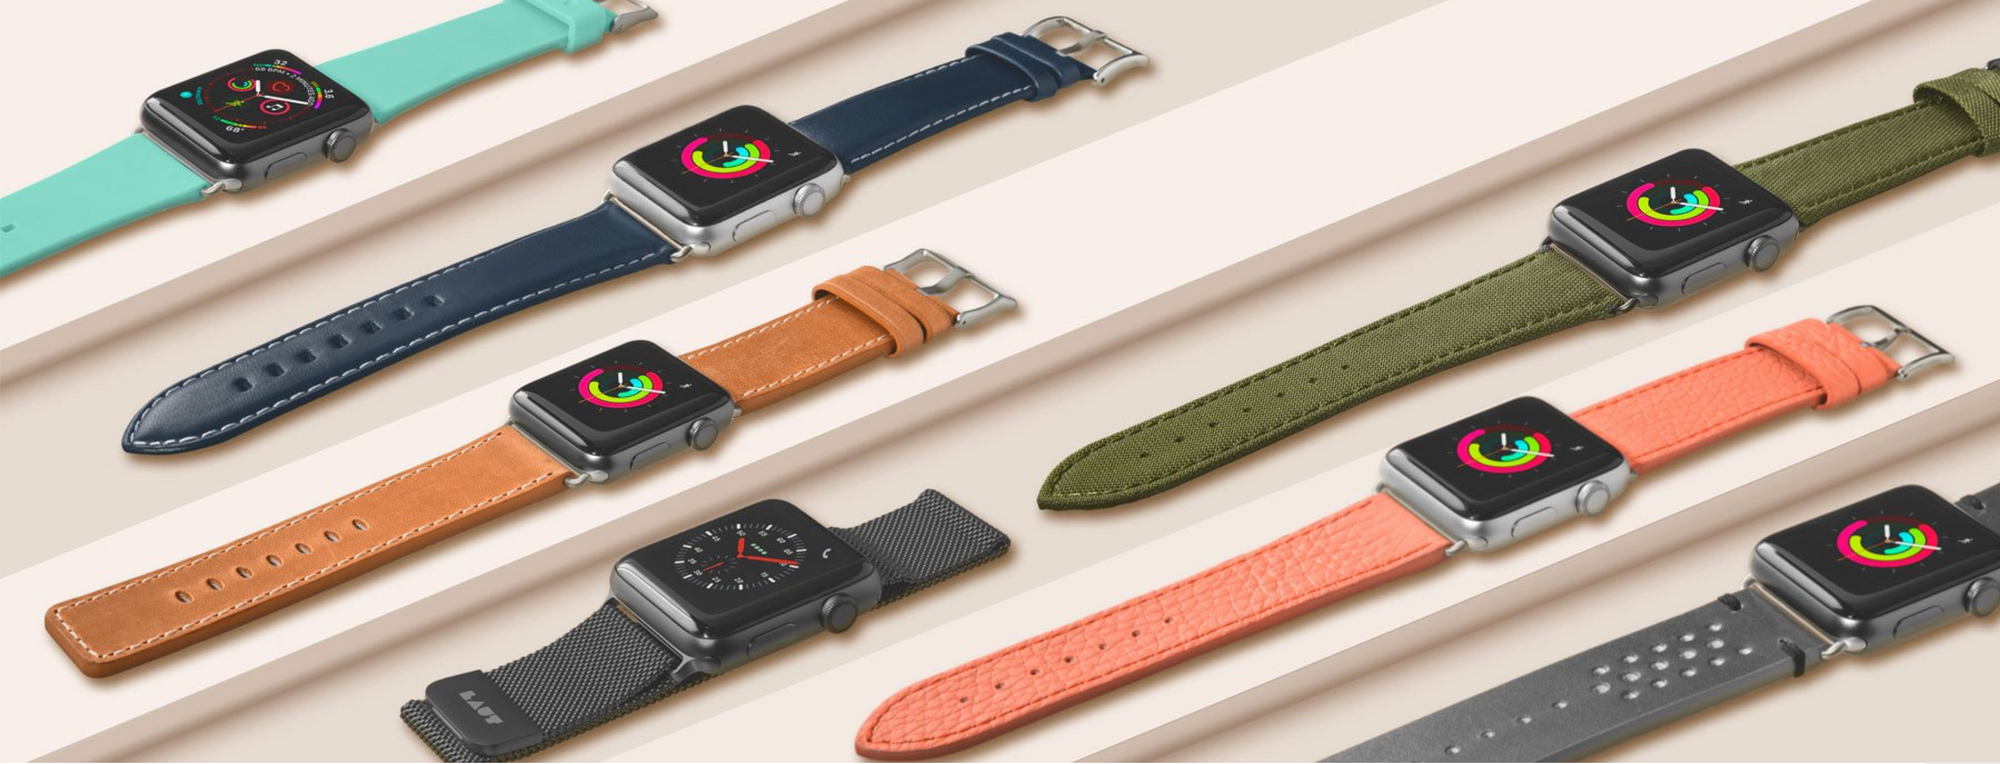 LAUT - German Designed Apple Watch Bands